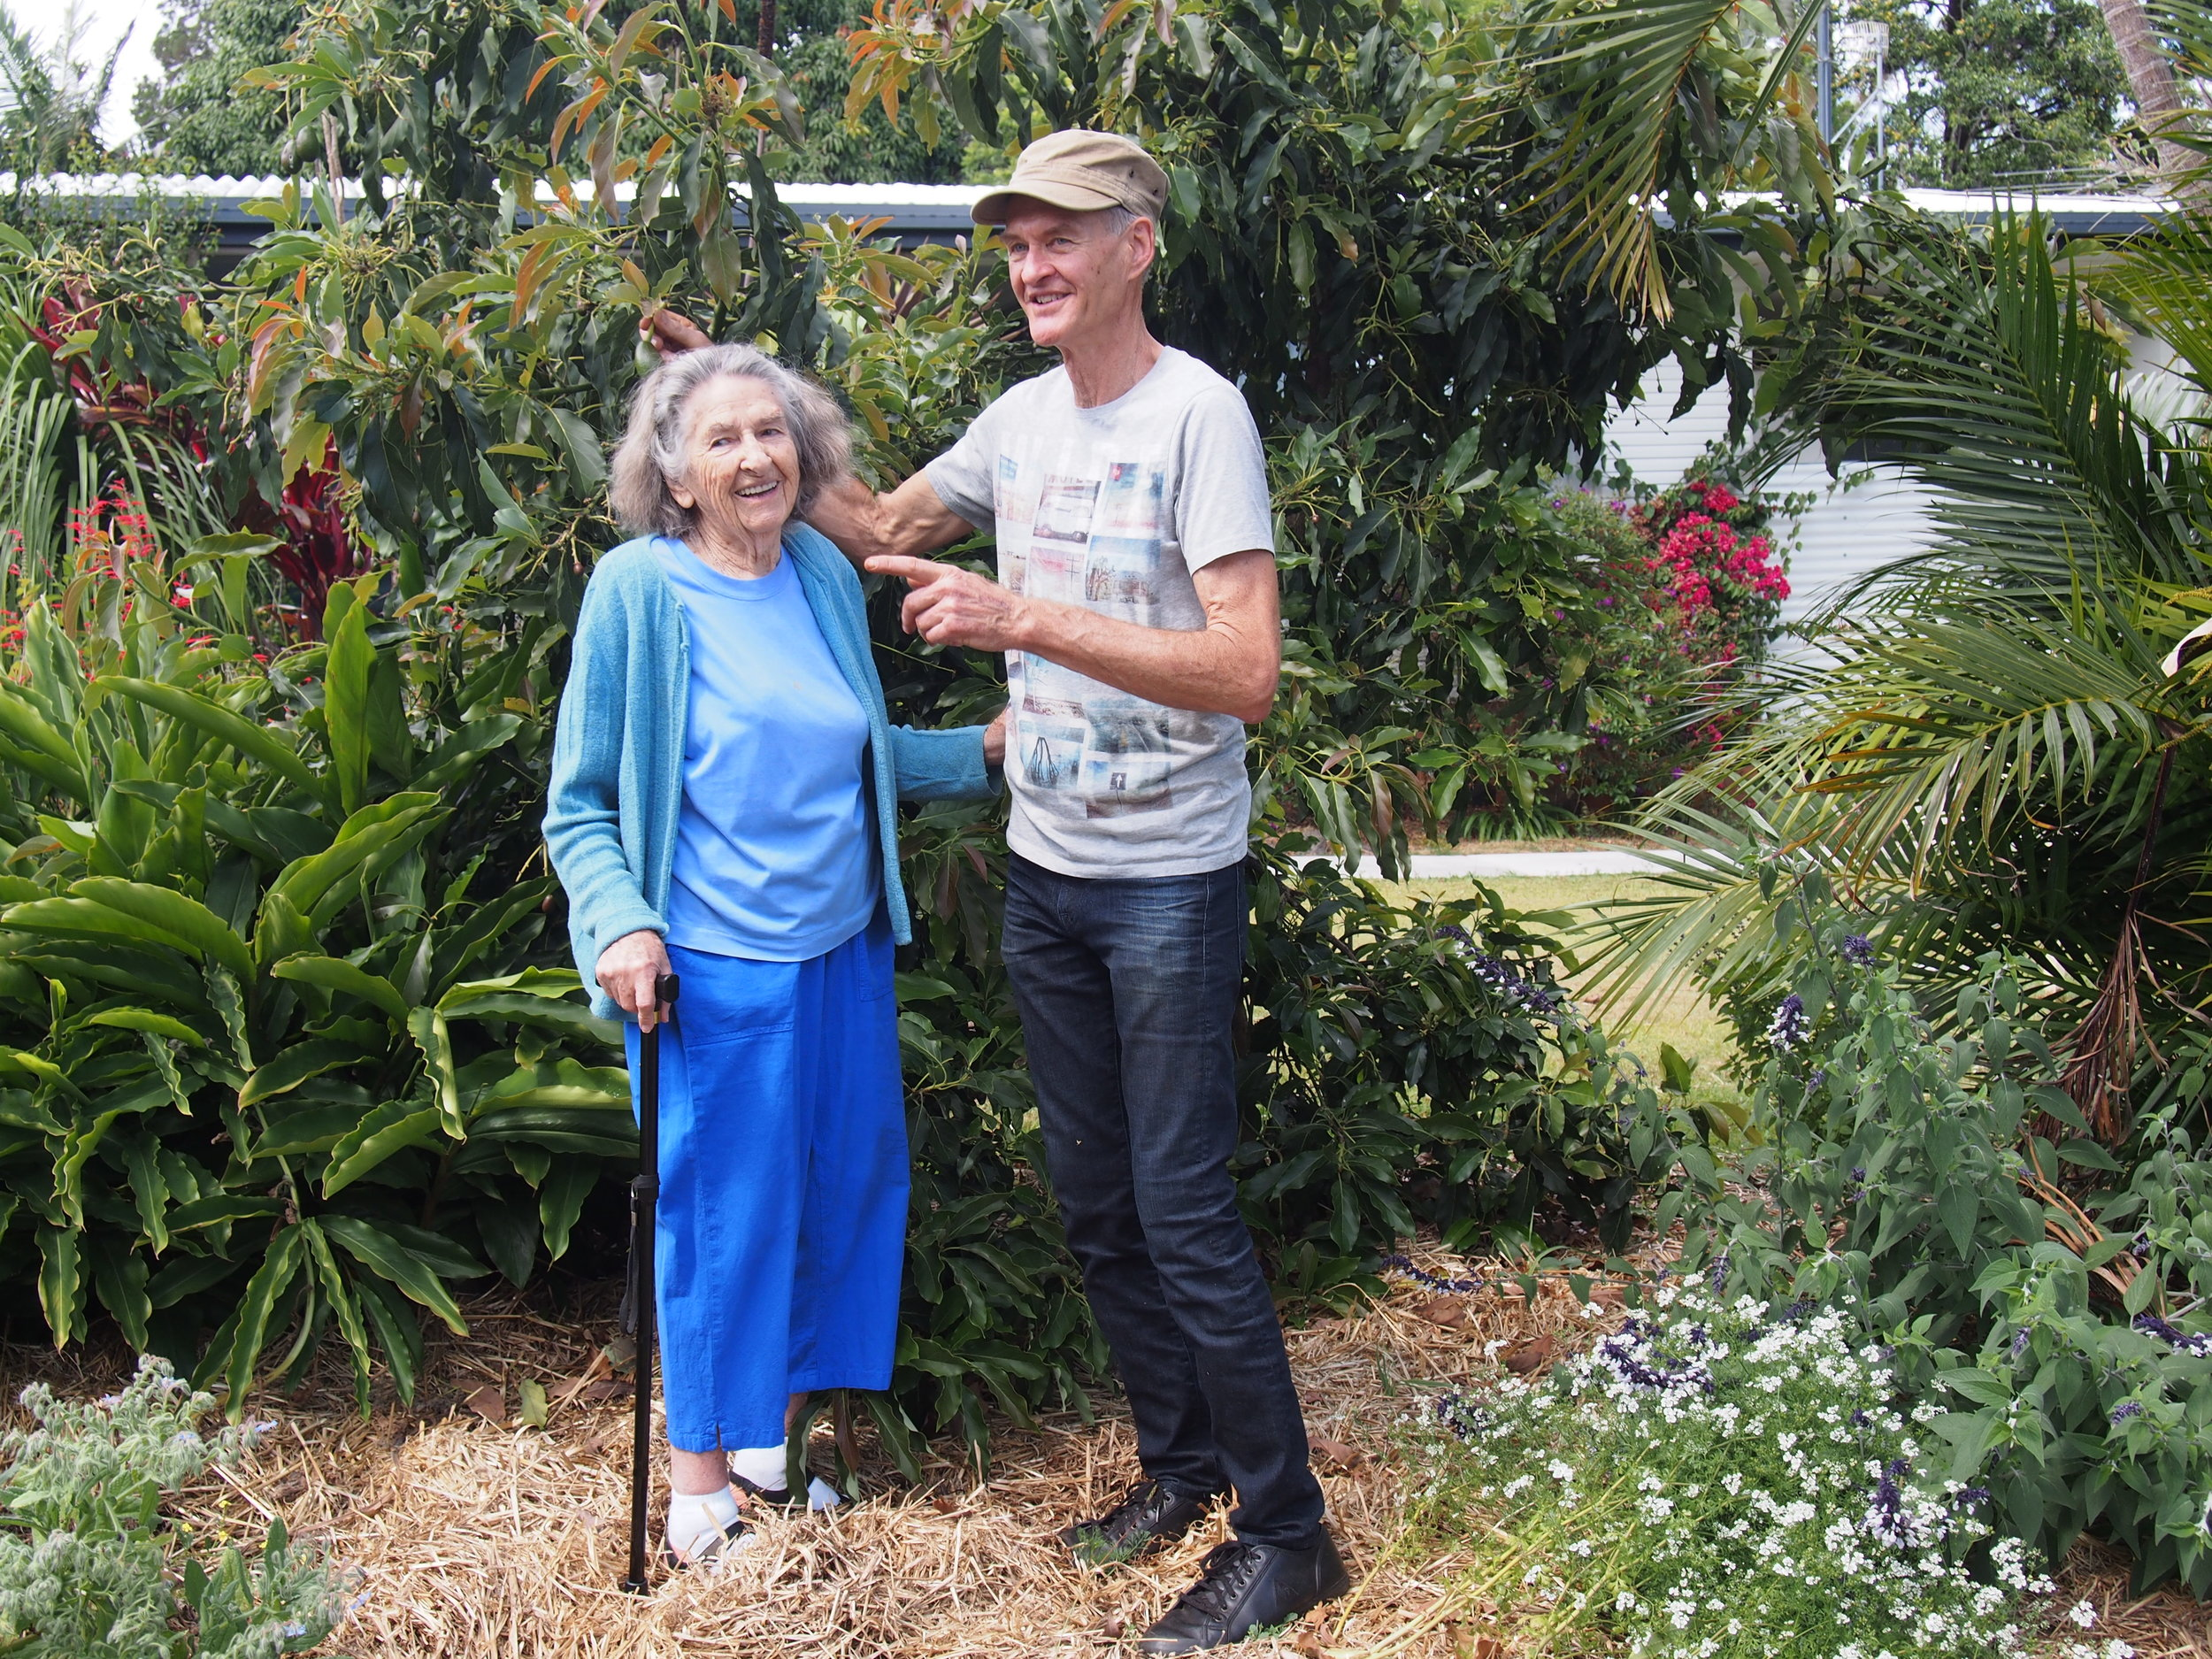 Ninety-something Cindy, talks avocado's with Duncan, grown on the suburban verge in the heart of sprawling suburbia.